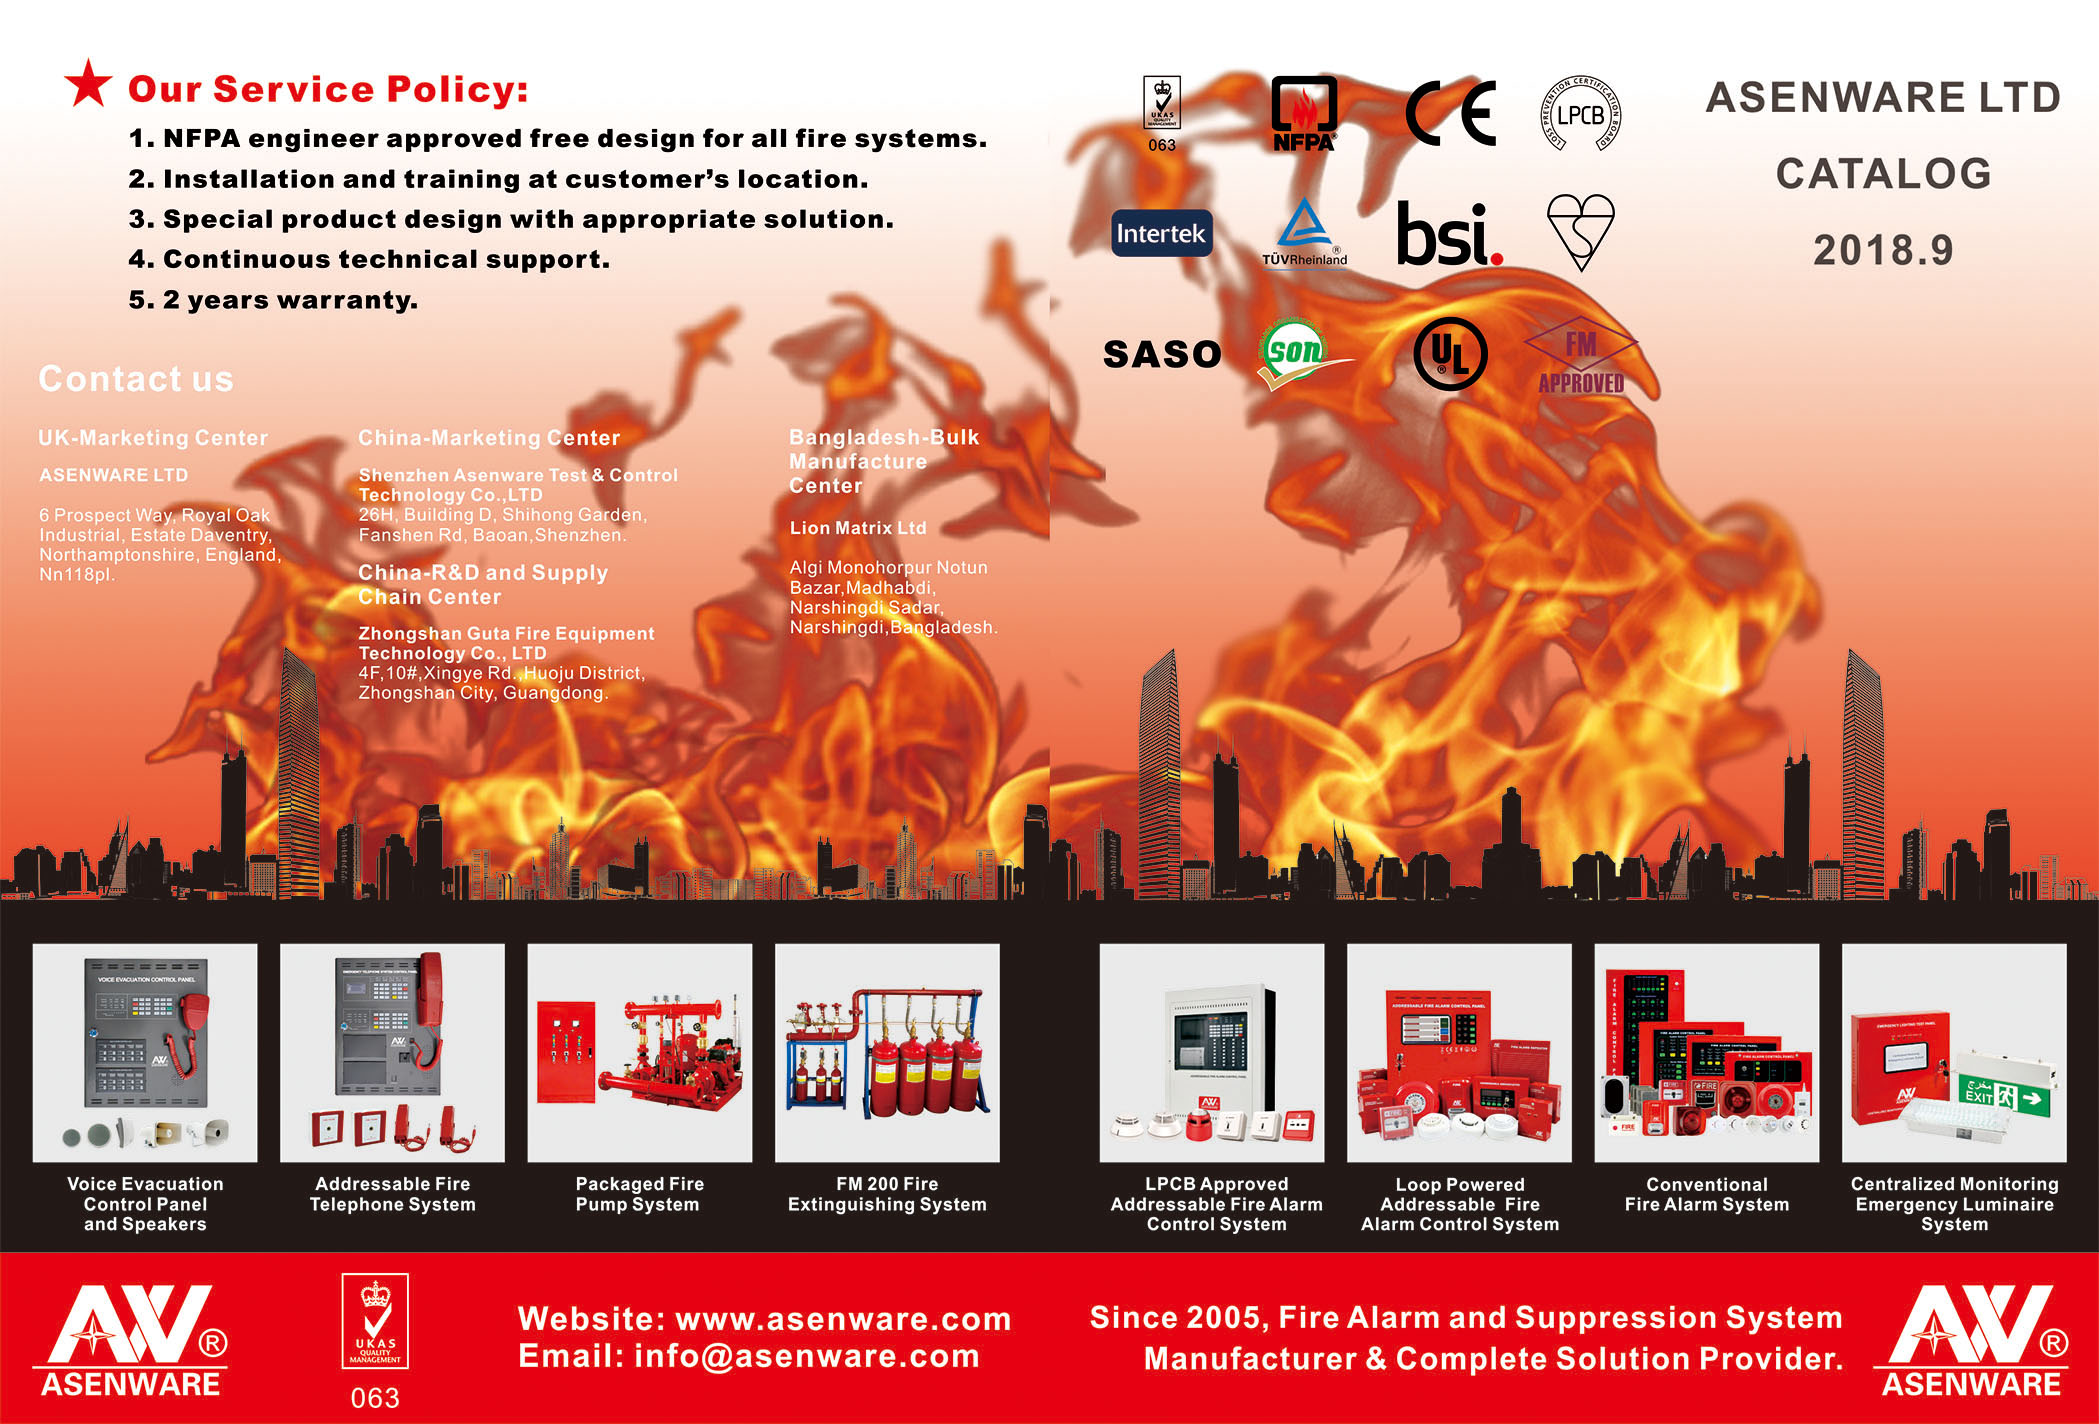 Asenware Fire Product Catalog